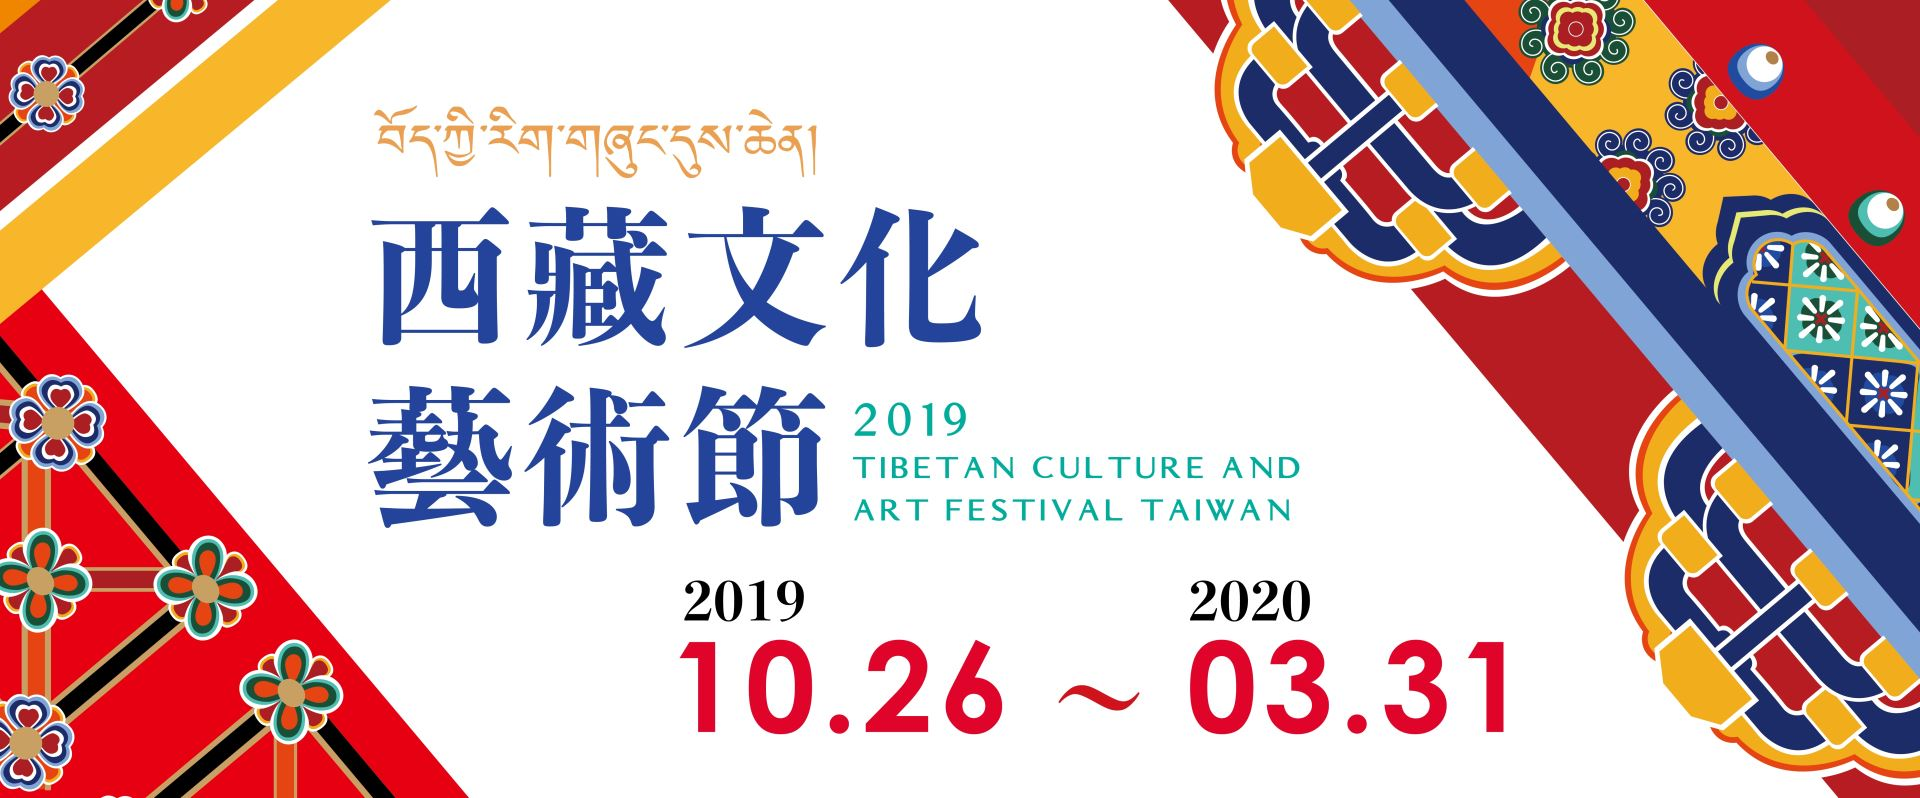 2019 Tibetan Culture and Art Festival in Taiwan[另開新視窗]